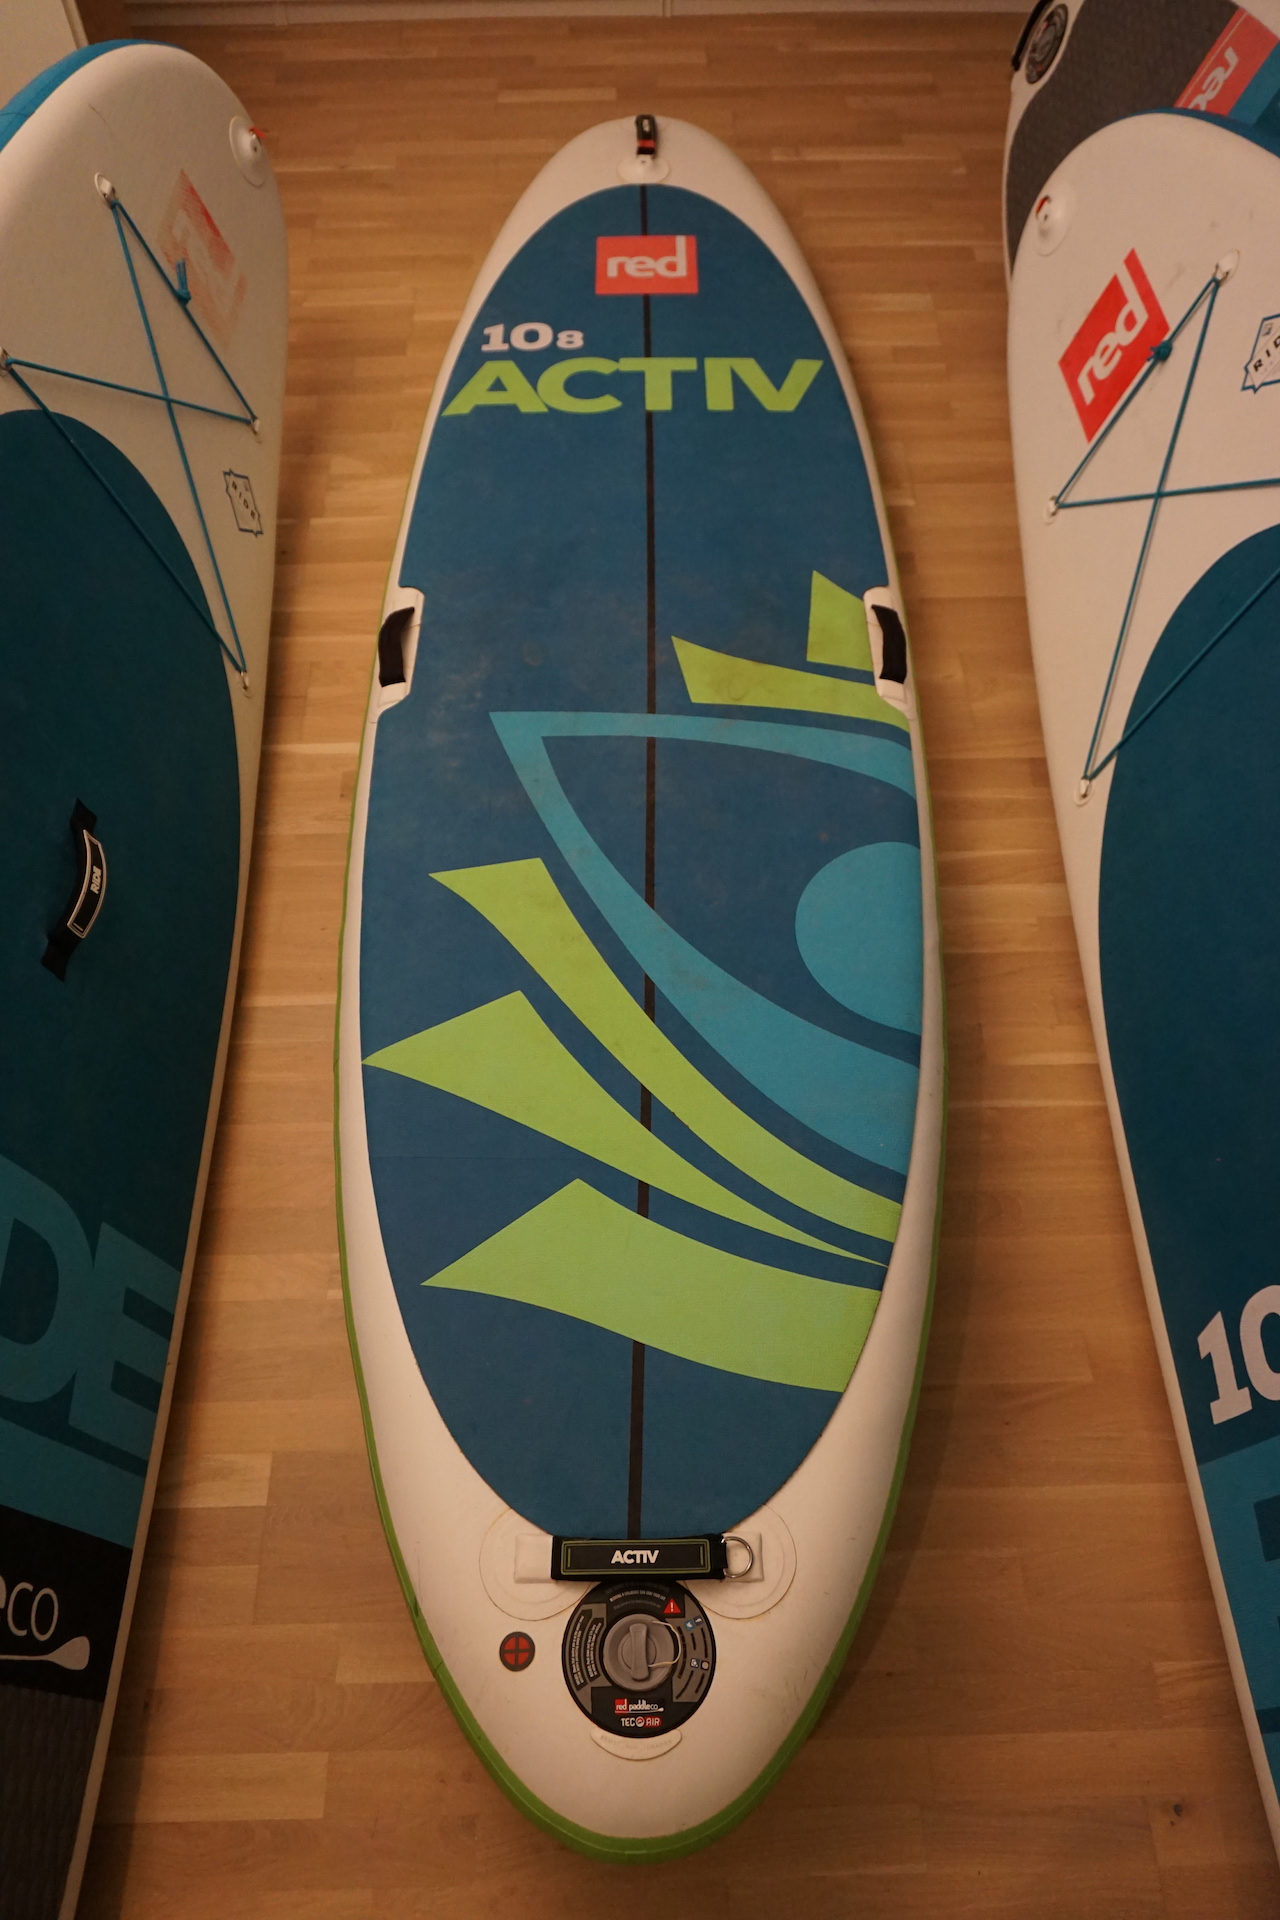 "Red 10'8"" Activ"